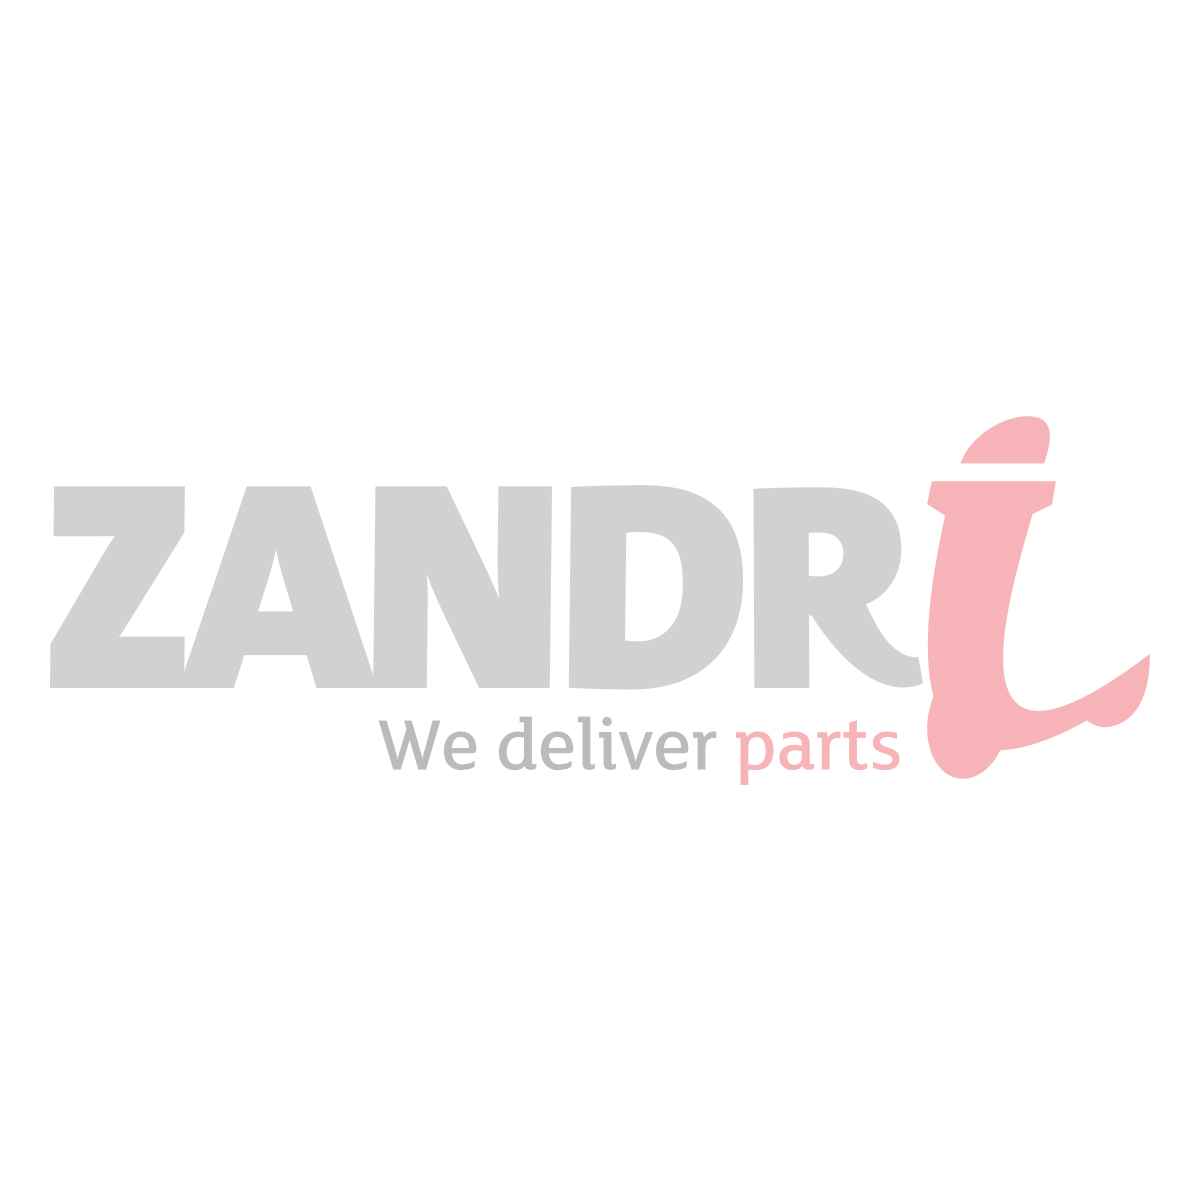 https://www.zandri.nl/media/catalog/product/cache/1/image/1200x1200/67754e084e727ef5b5973a4a9e3c5e34/k/a/kappenset_piaggio_zip_5_delig_mat_rood_sp_look_led_verlichting.jpg